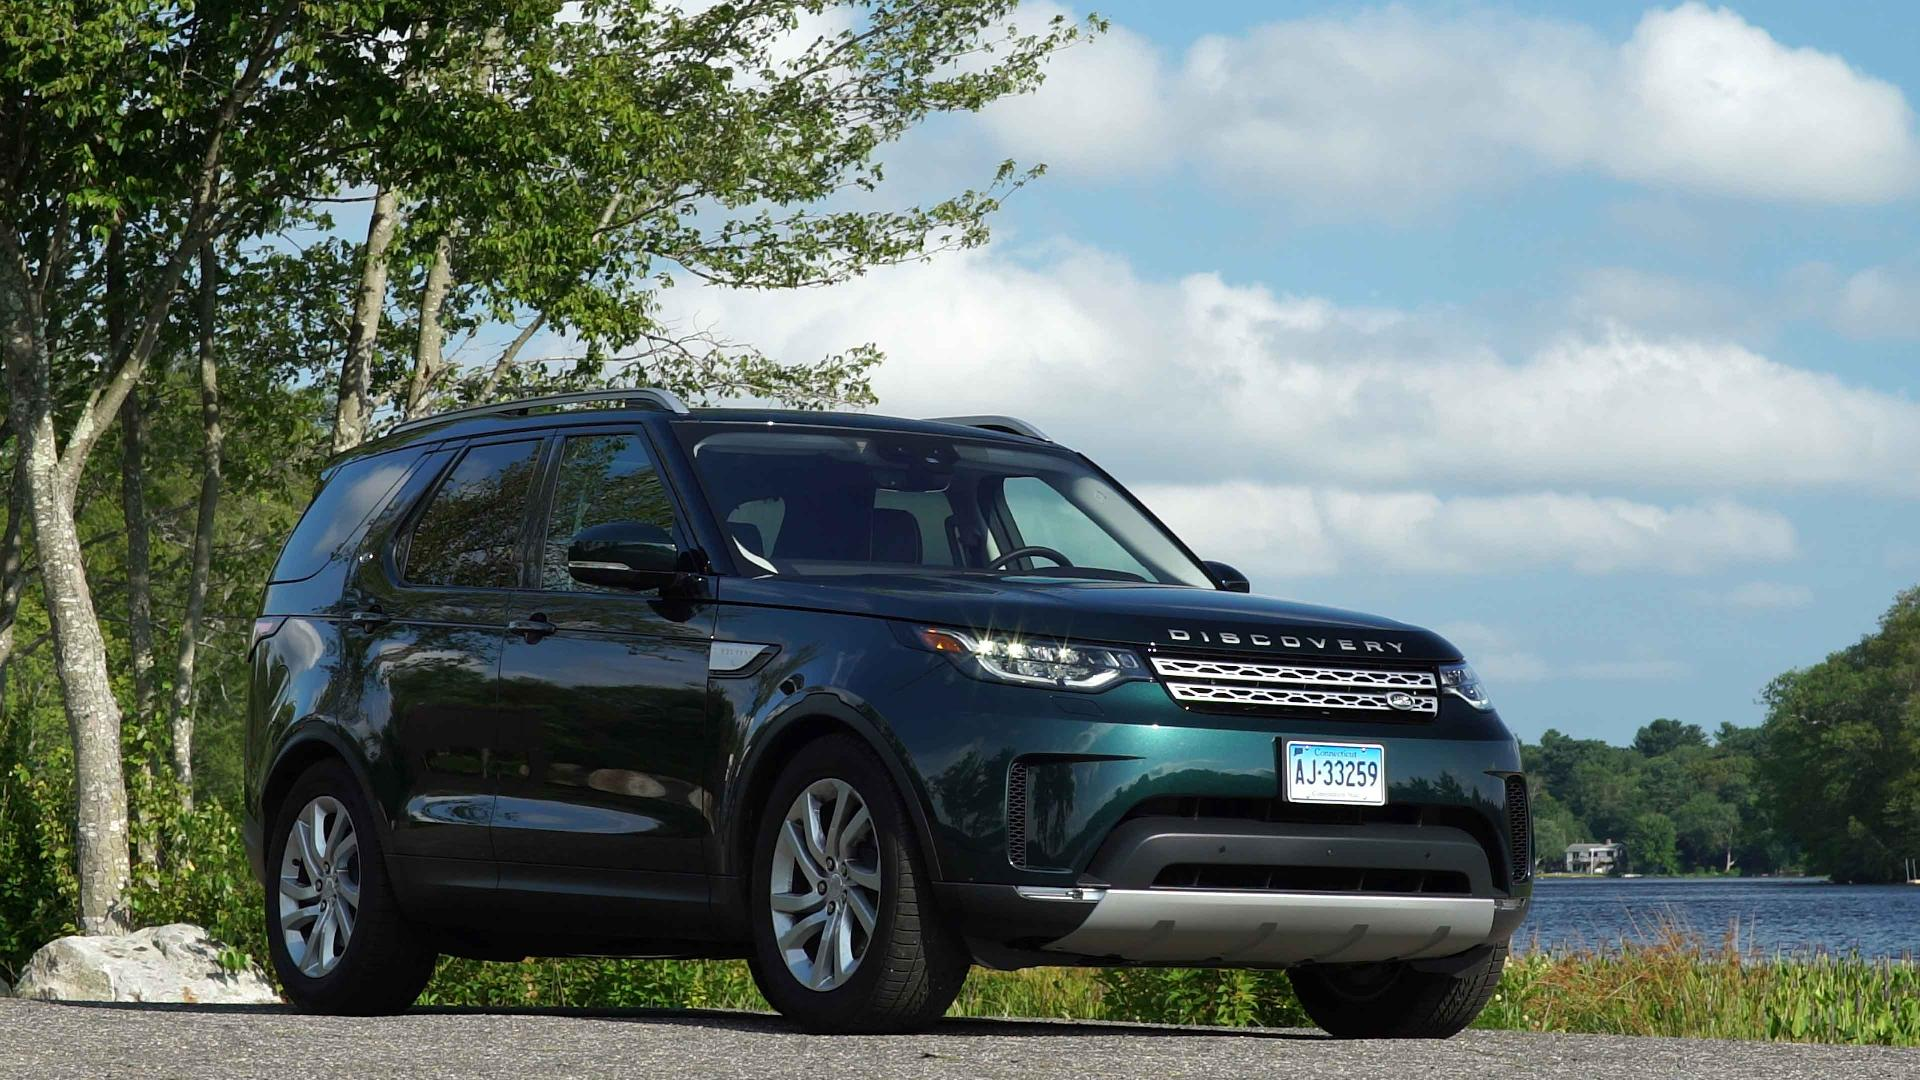 Malfunctions in Land Rover vehicles: the company is conducting a replacement